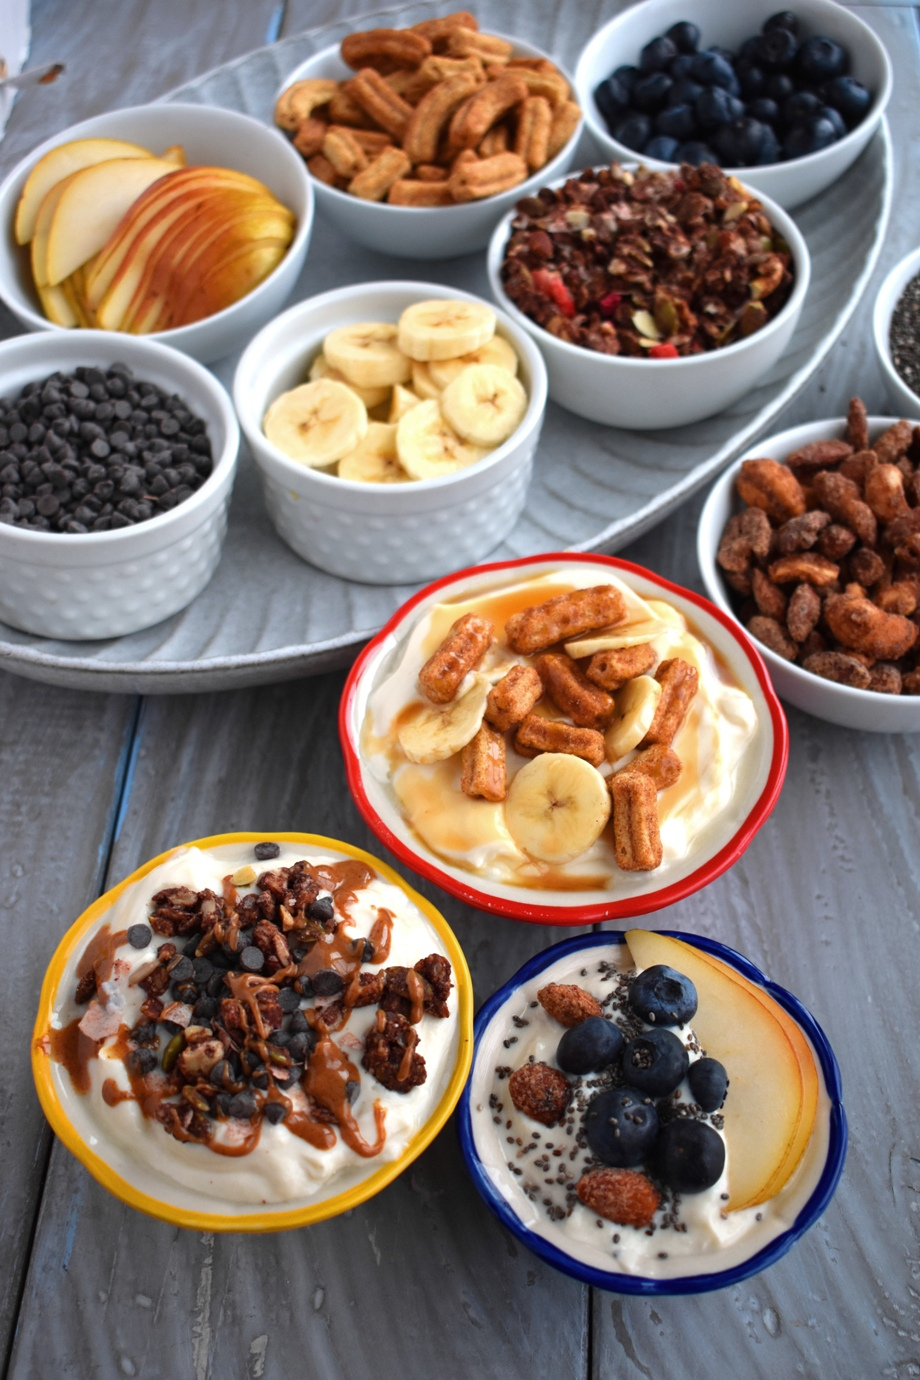 Yogurt parfait topping ideas